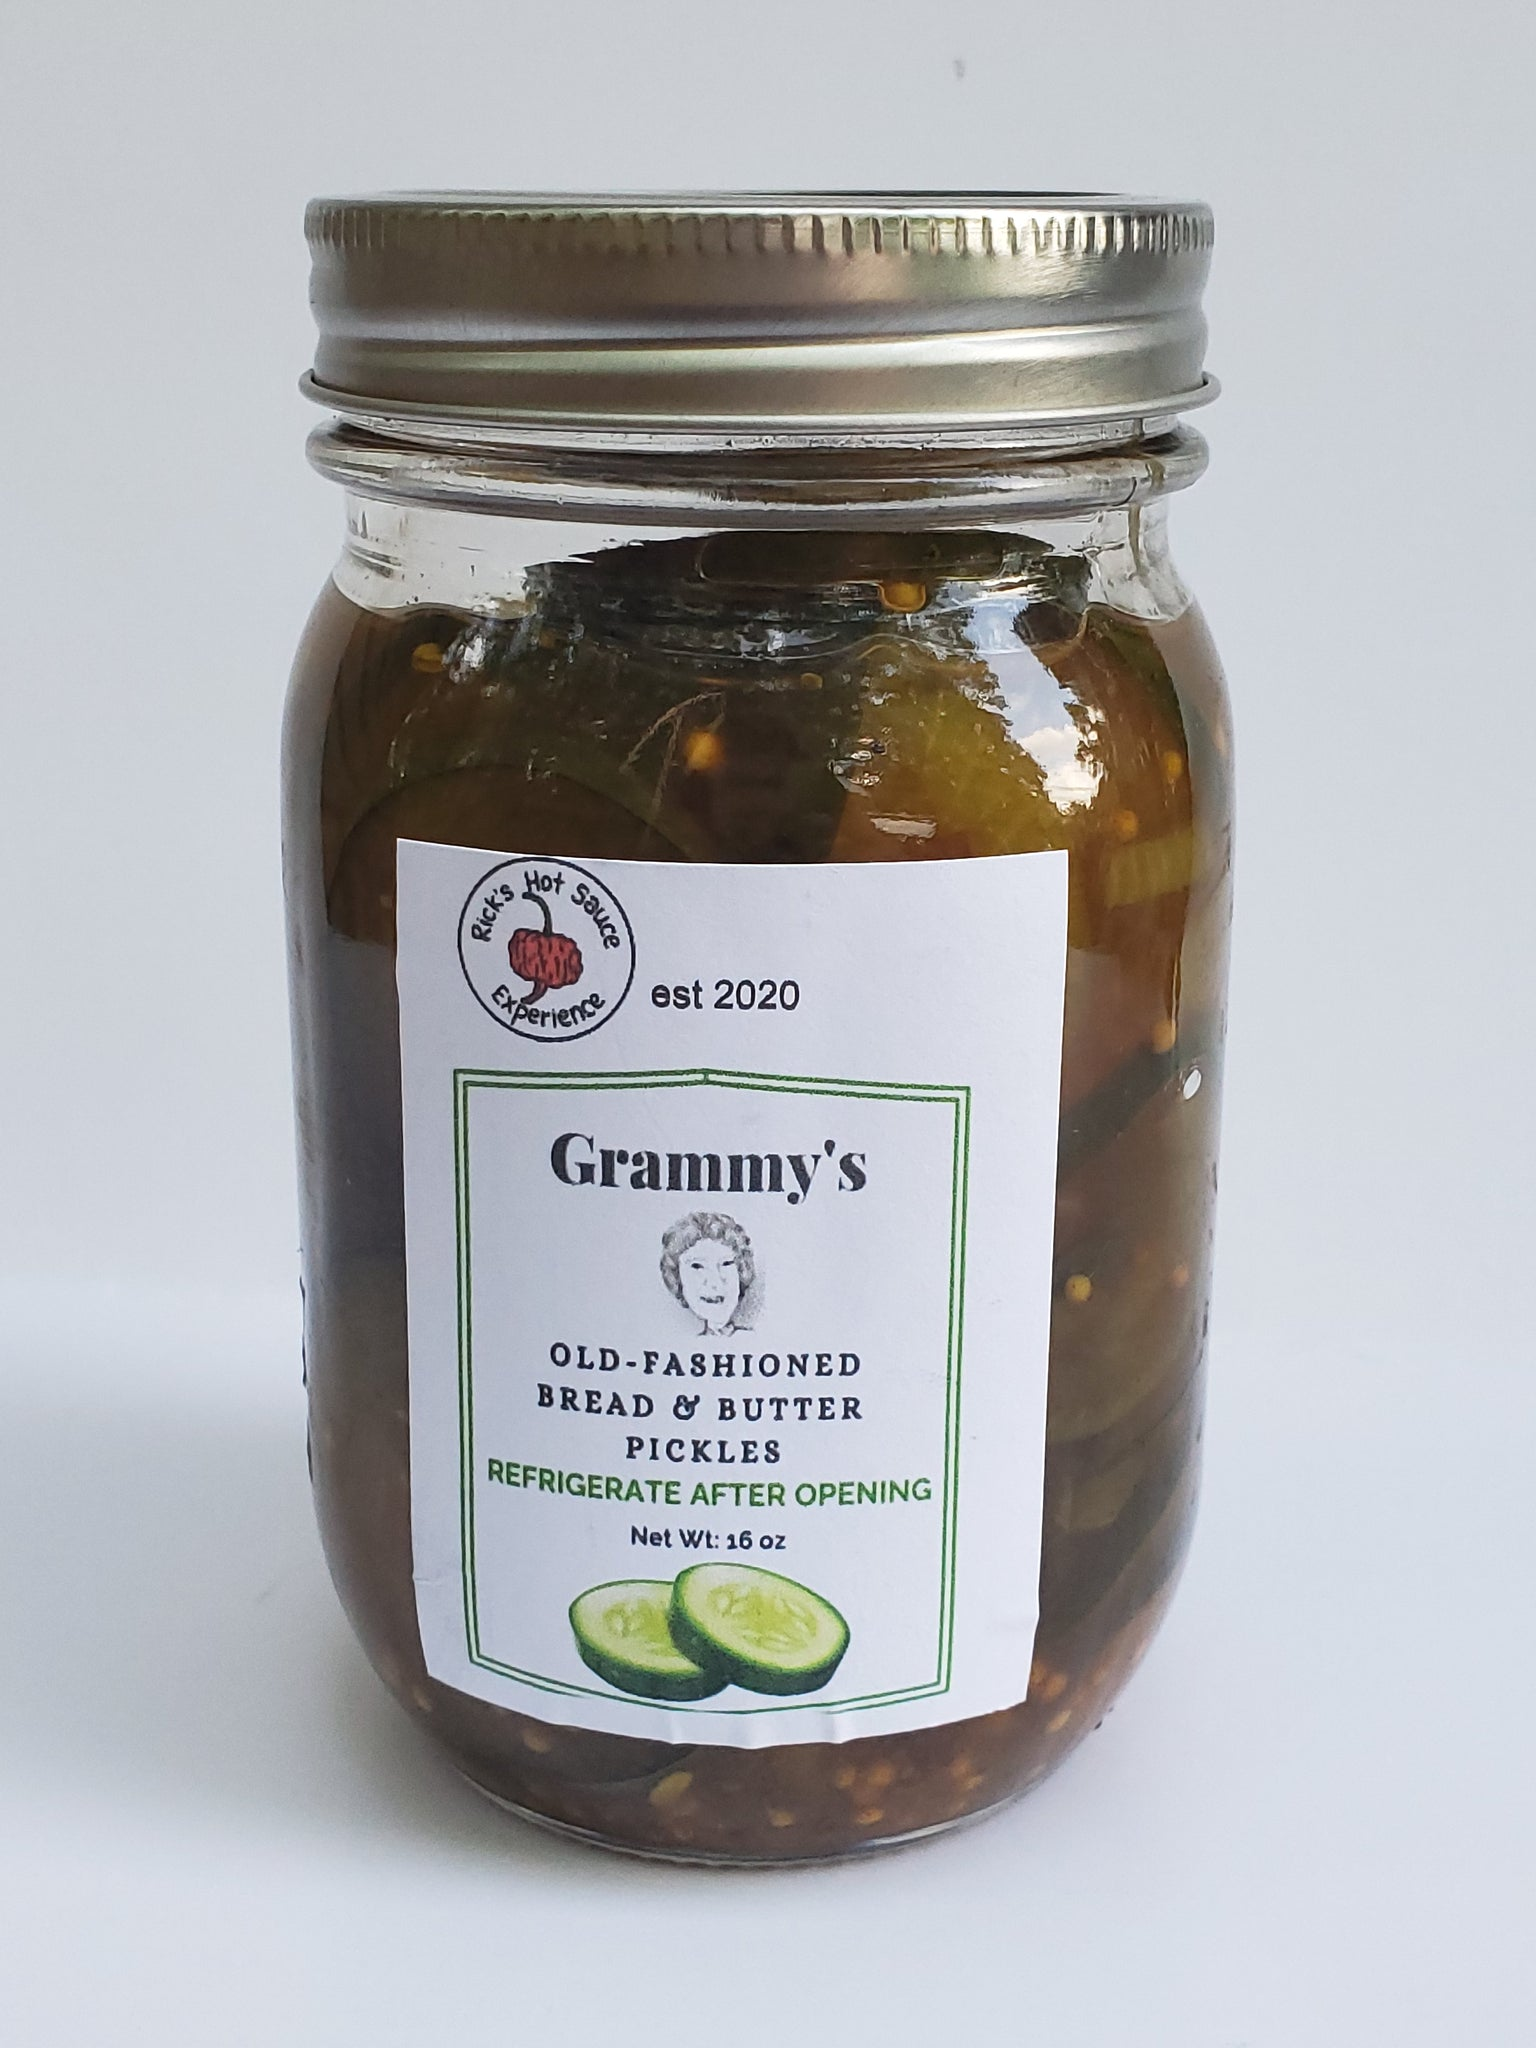 Grammy's Bread & Butter Pickles